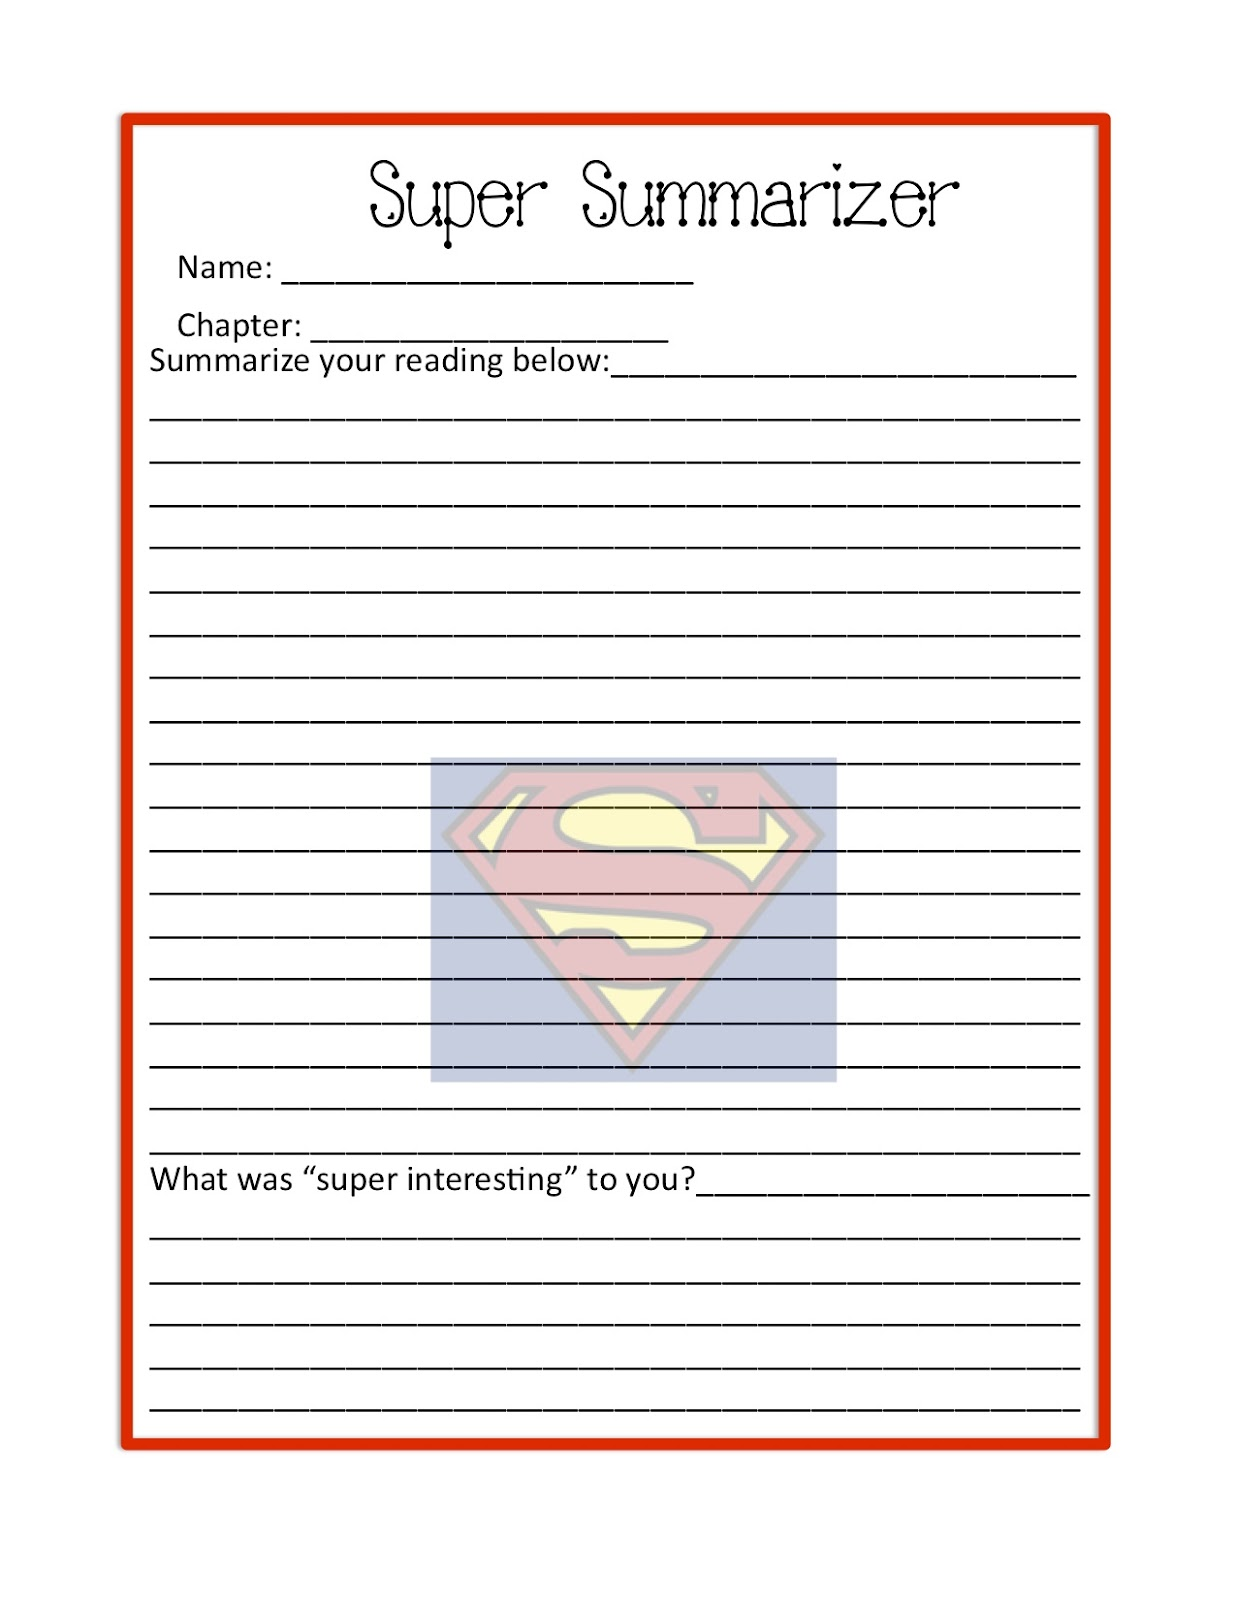 Teaching With Class 7 Literature Circle Job Worksheets Great For Stimulating Discussions On